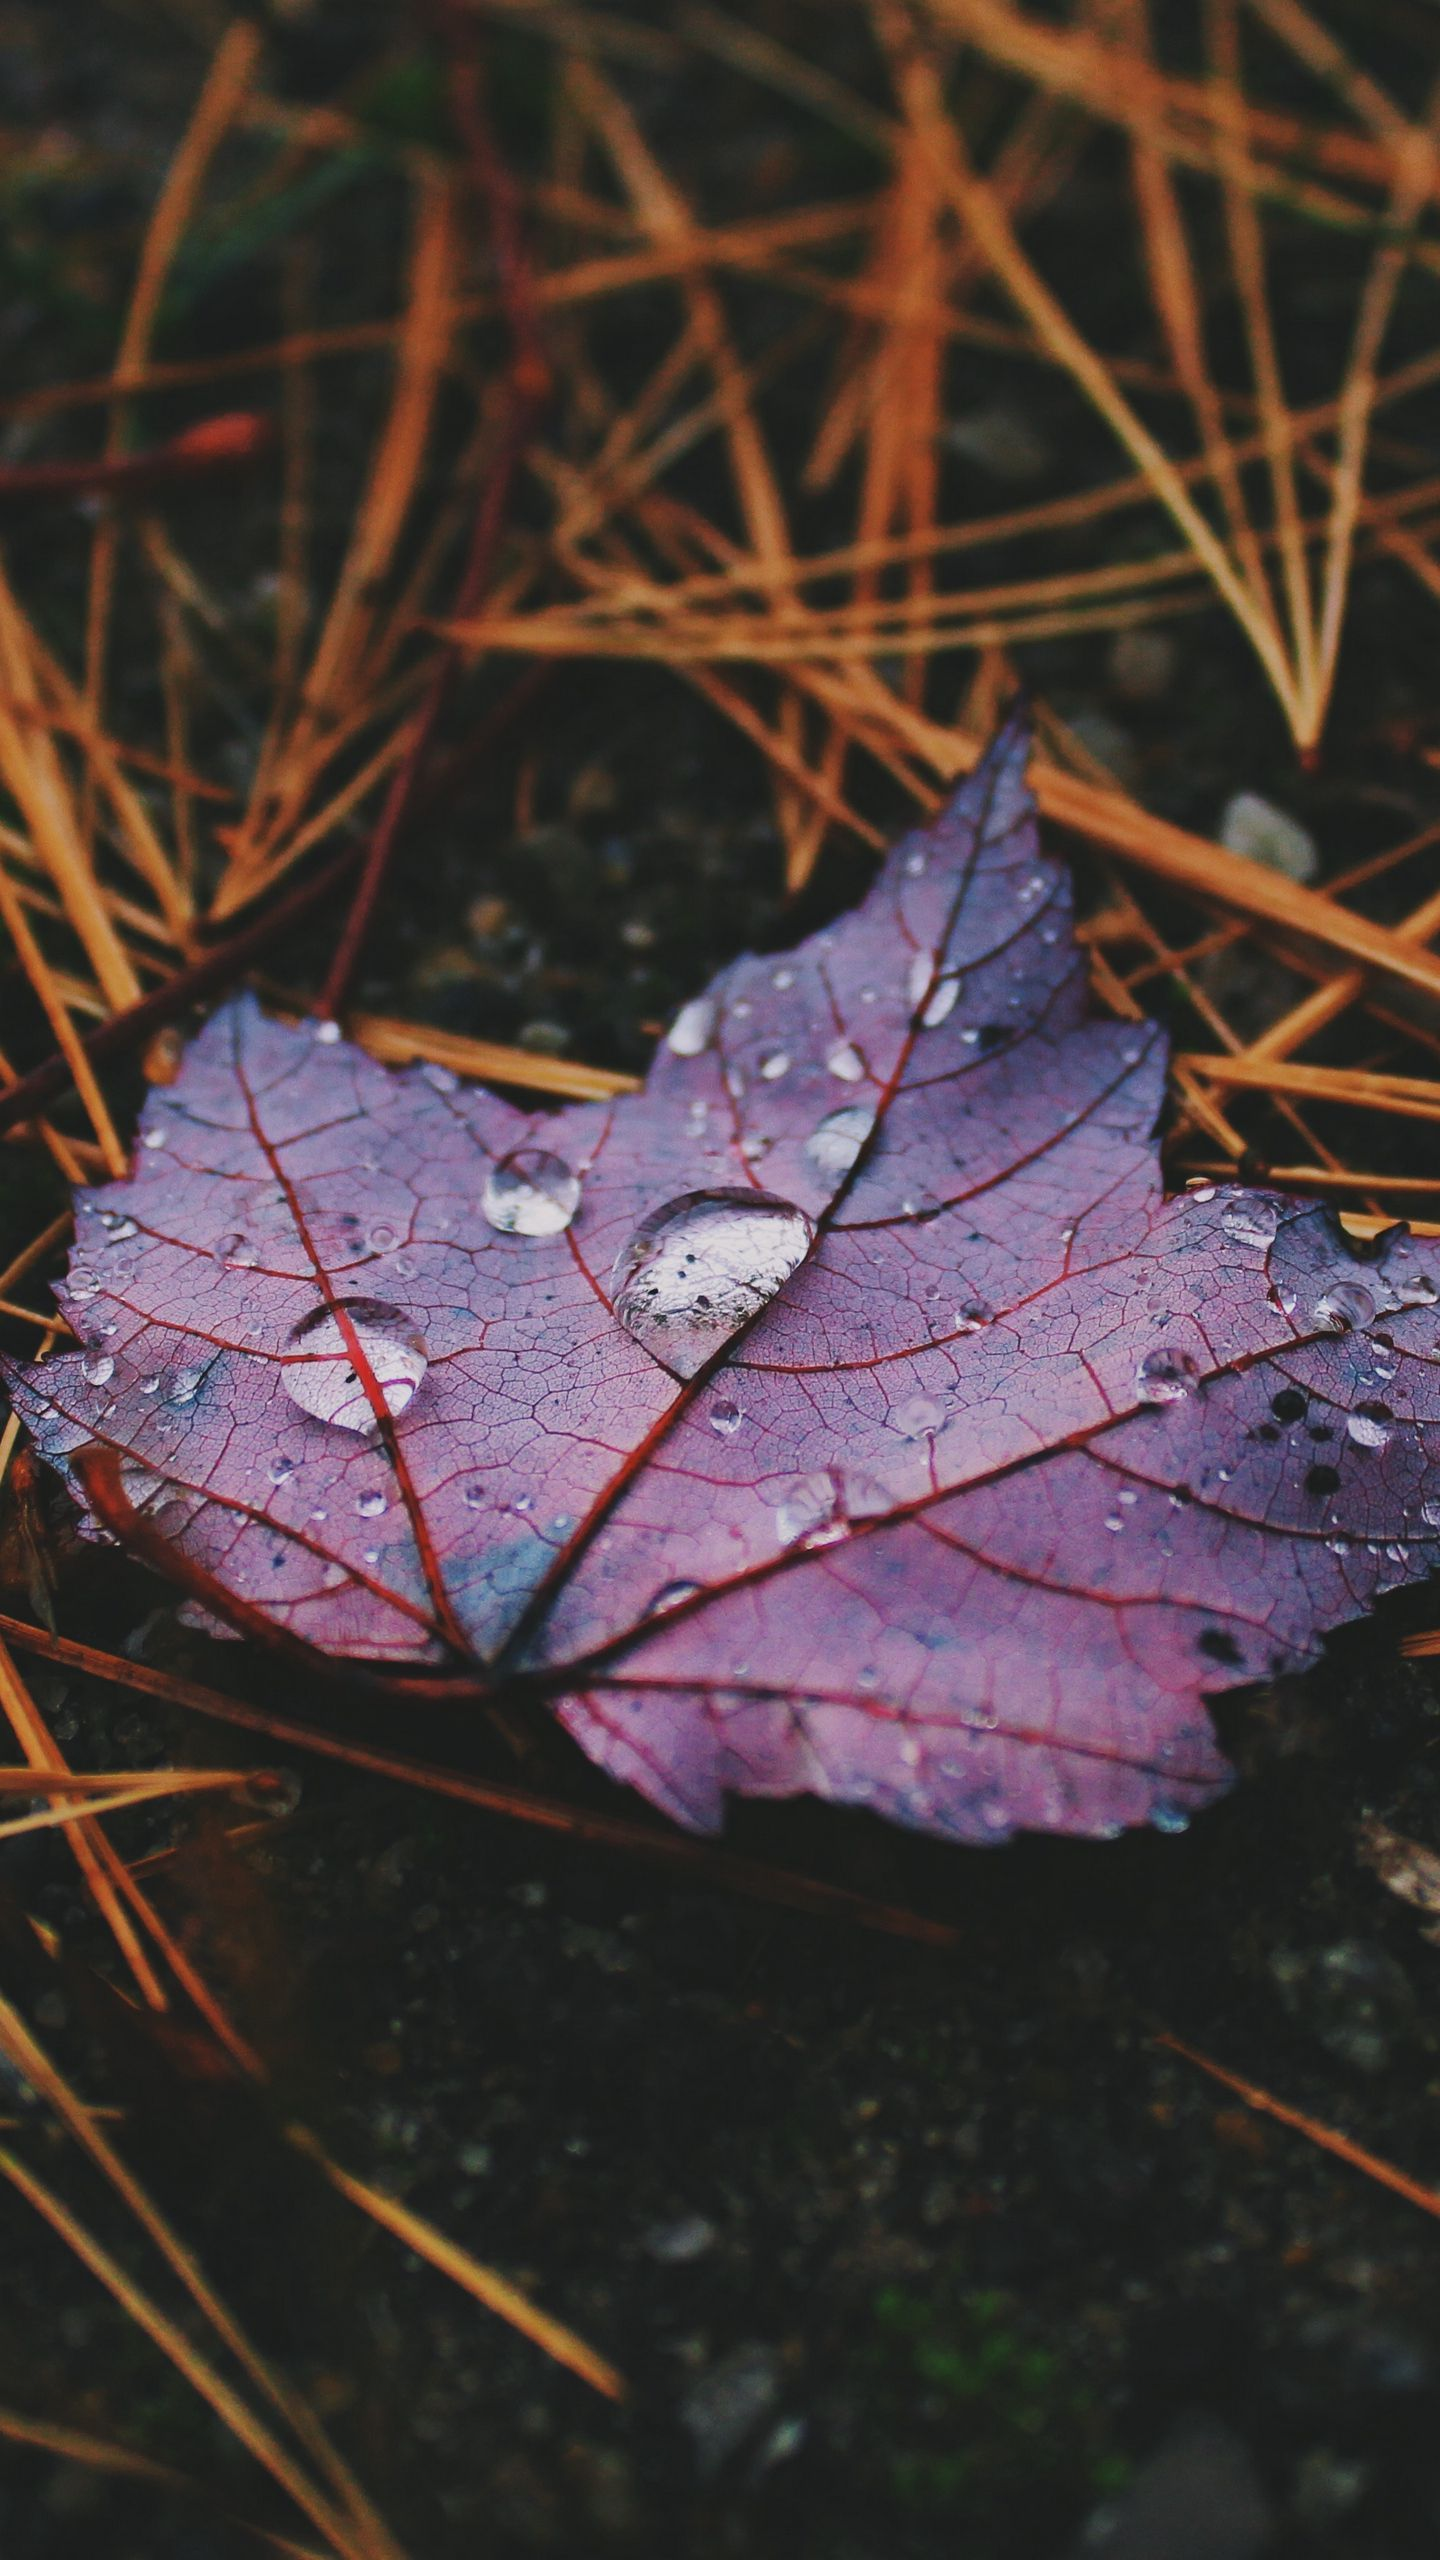 See My Collection Of Awesome Iphone And Android Fall Wallpapers And Background Images In Ultra High Definition In 2020 Wallpaper Fall Wallpaper Smartphone Wallpaper